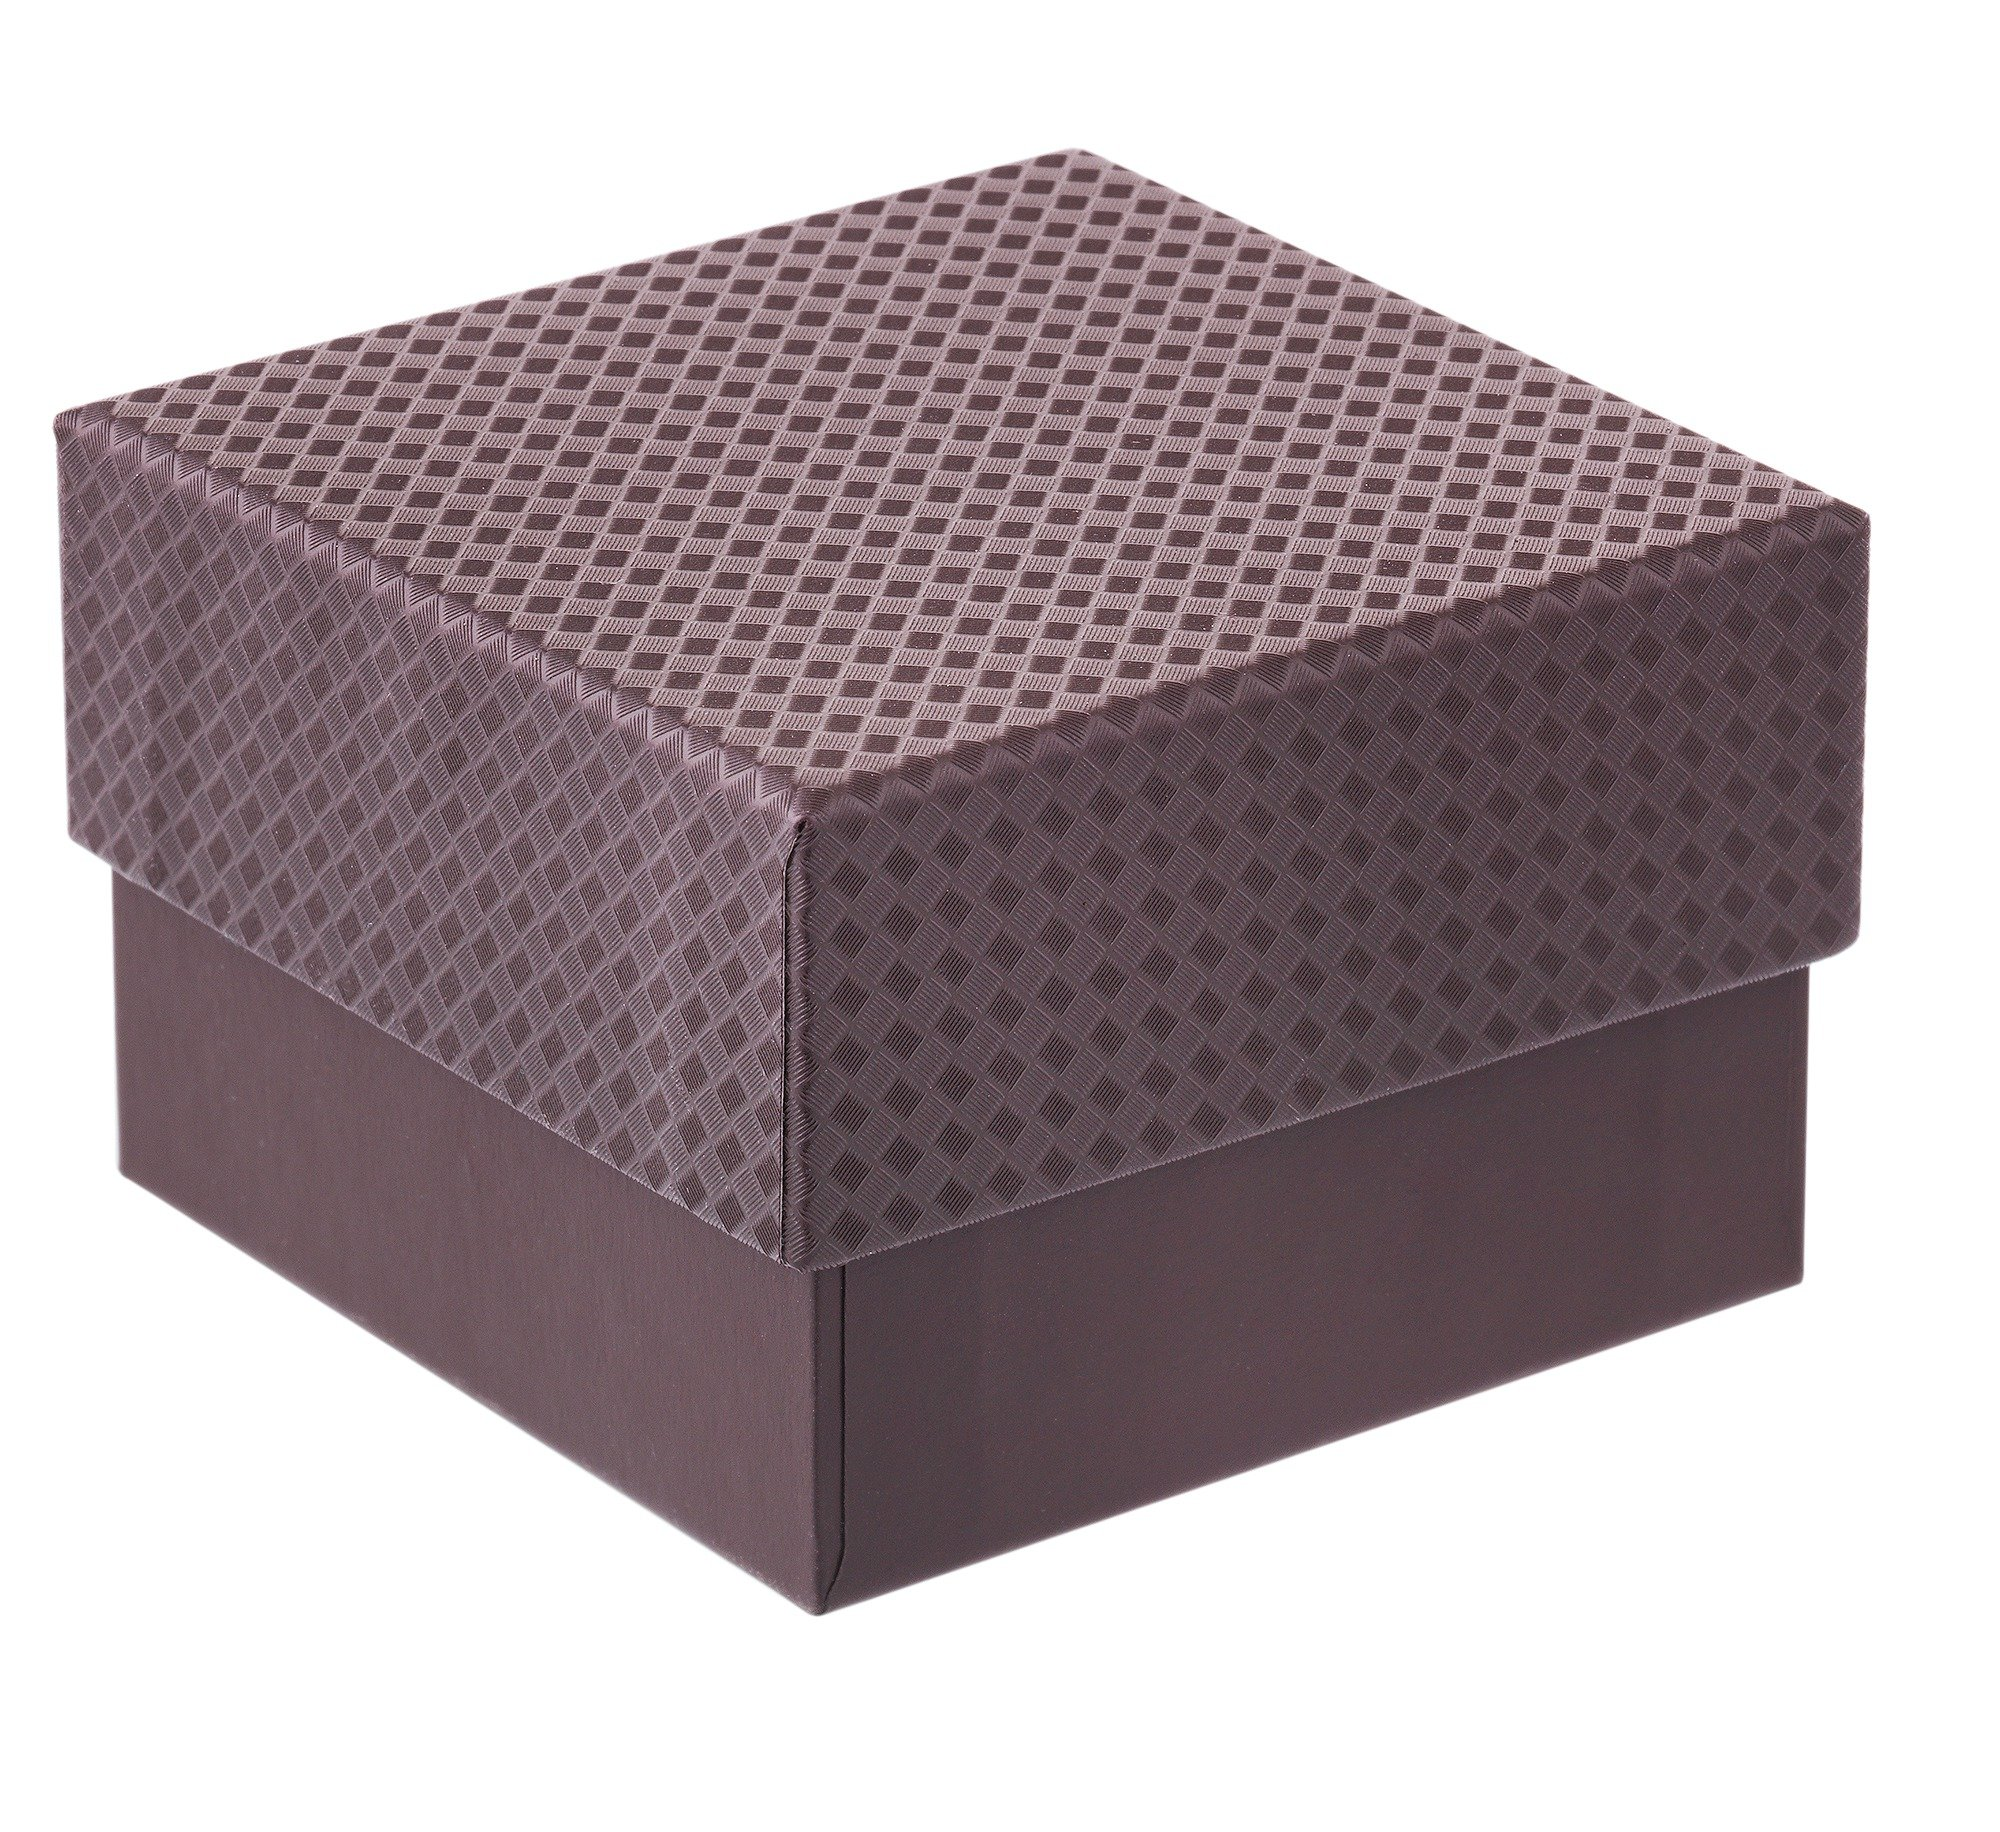 Image of Chocolate Brown - Small - Gift Box with Internal Black Fitment